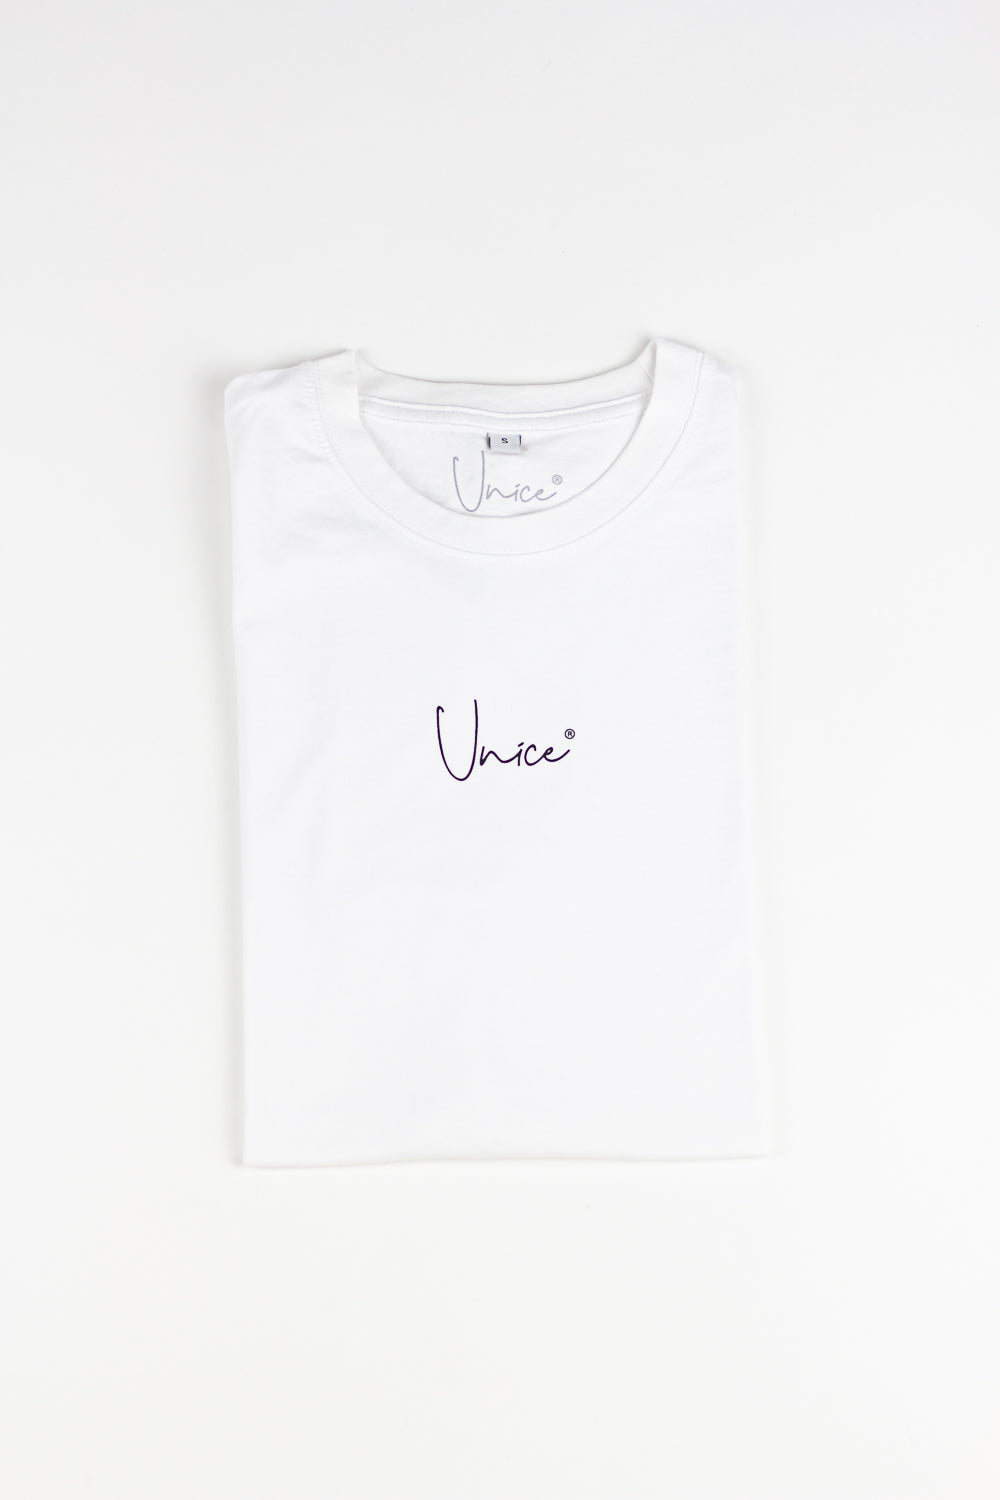 2. Unice T-shirt WHITE